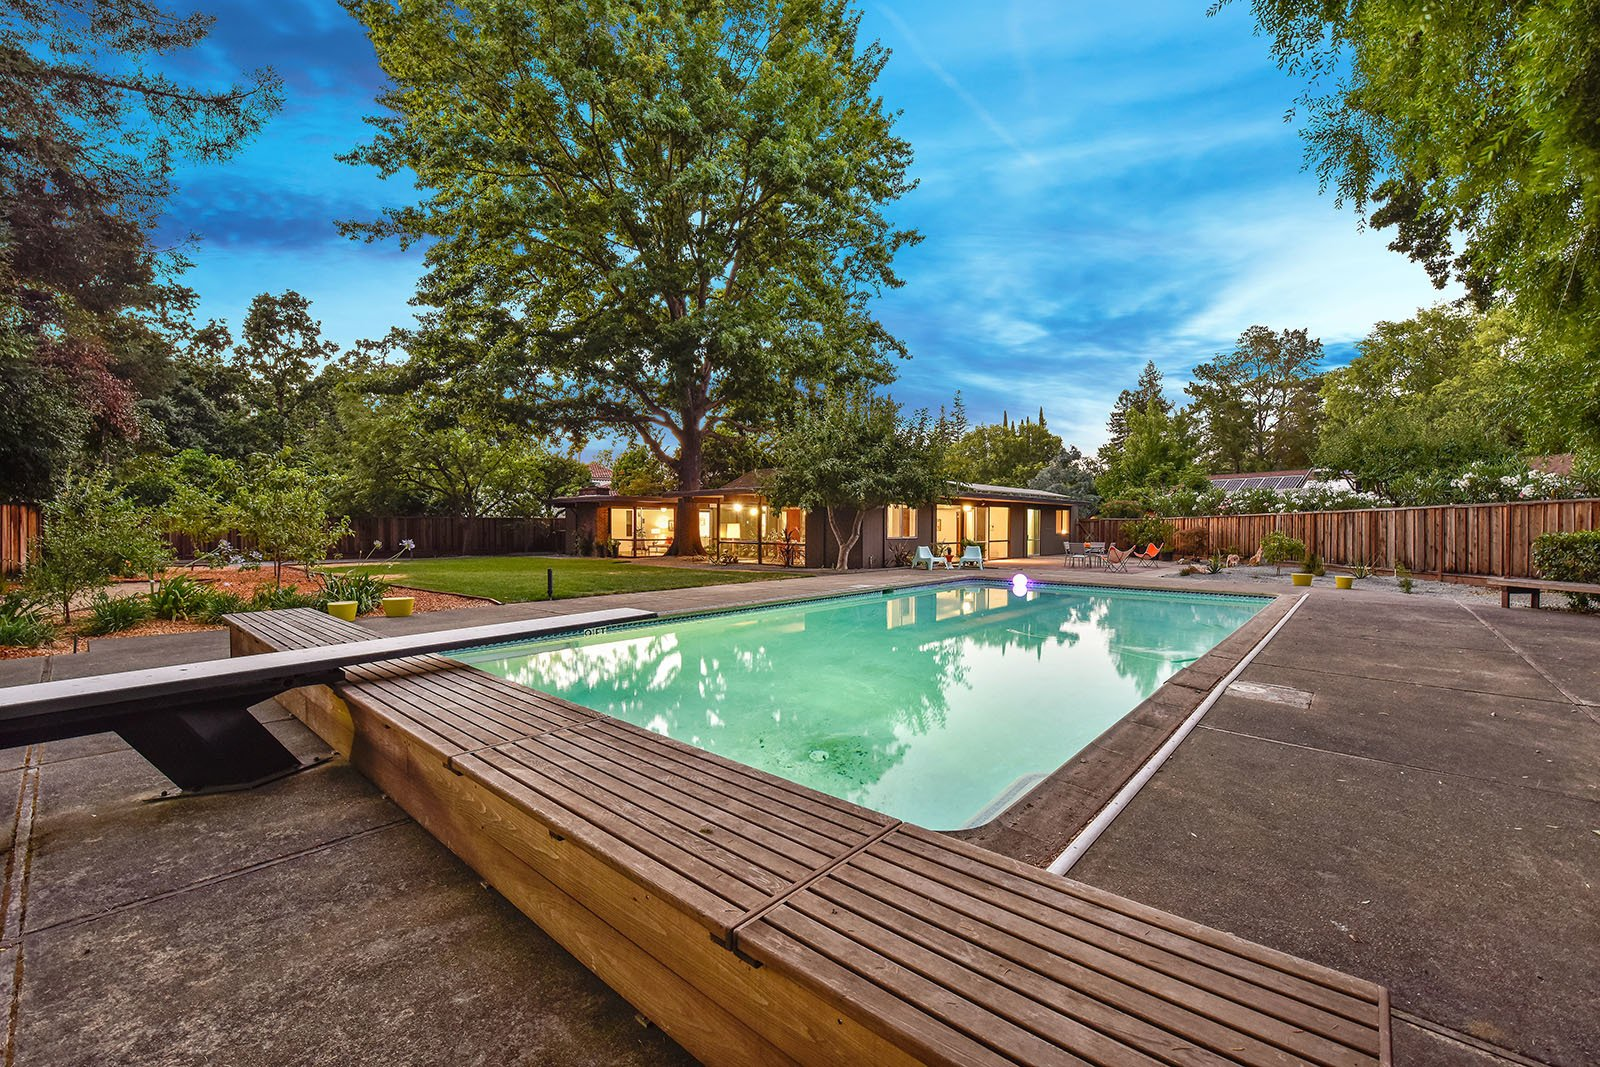 Outdoor, Large Pools, Tubs, Shower, and Concrete Patio, Porch, Deck  Photo 14 of 15 in An Enormous Bay Area Eichler Asks $1.45M